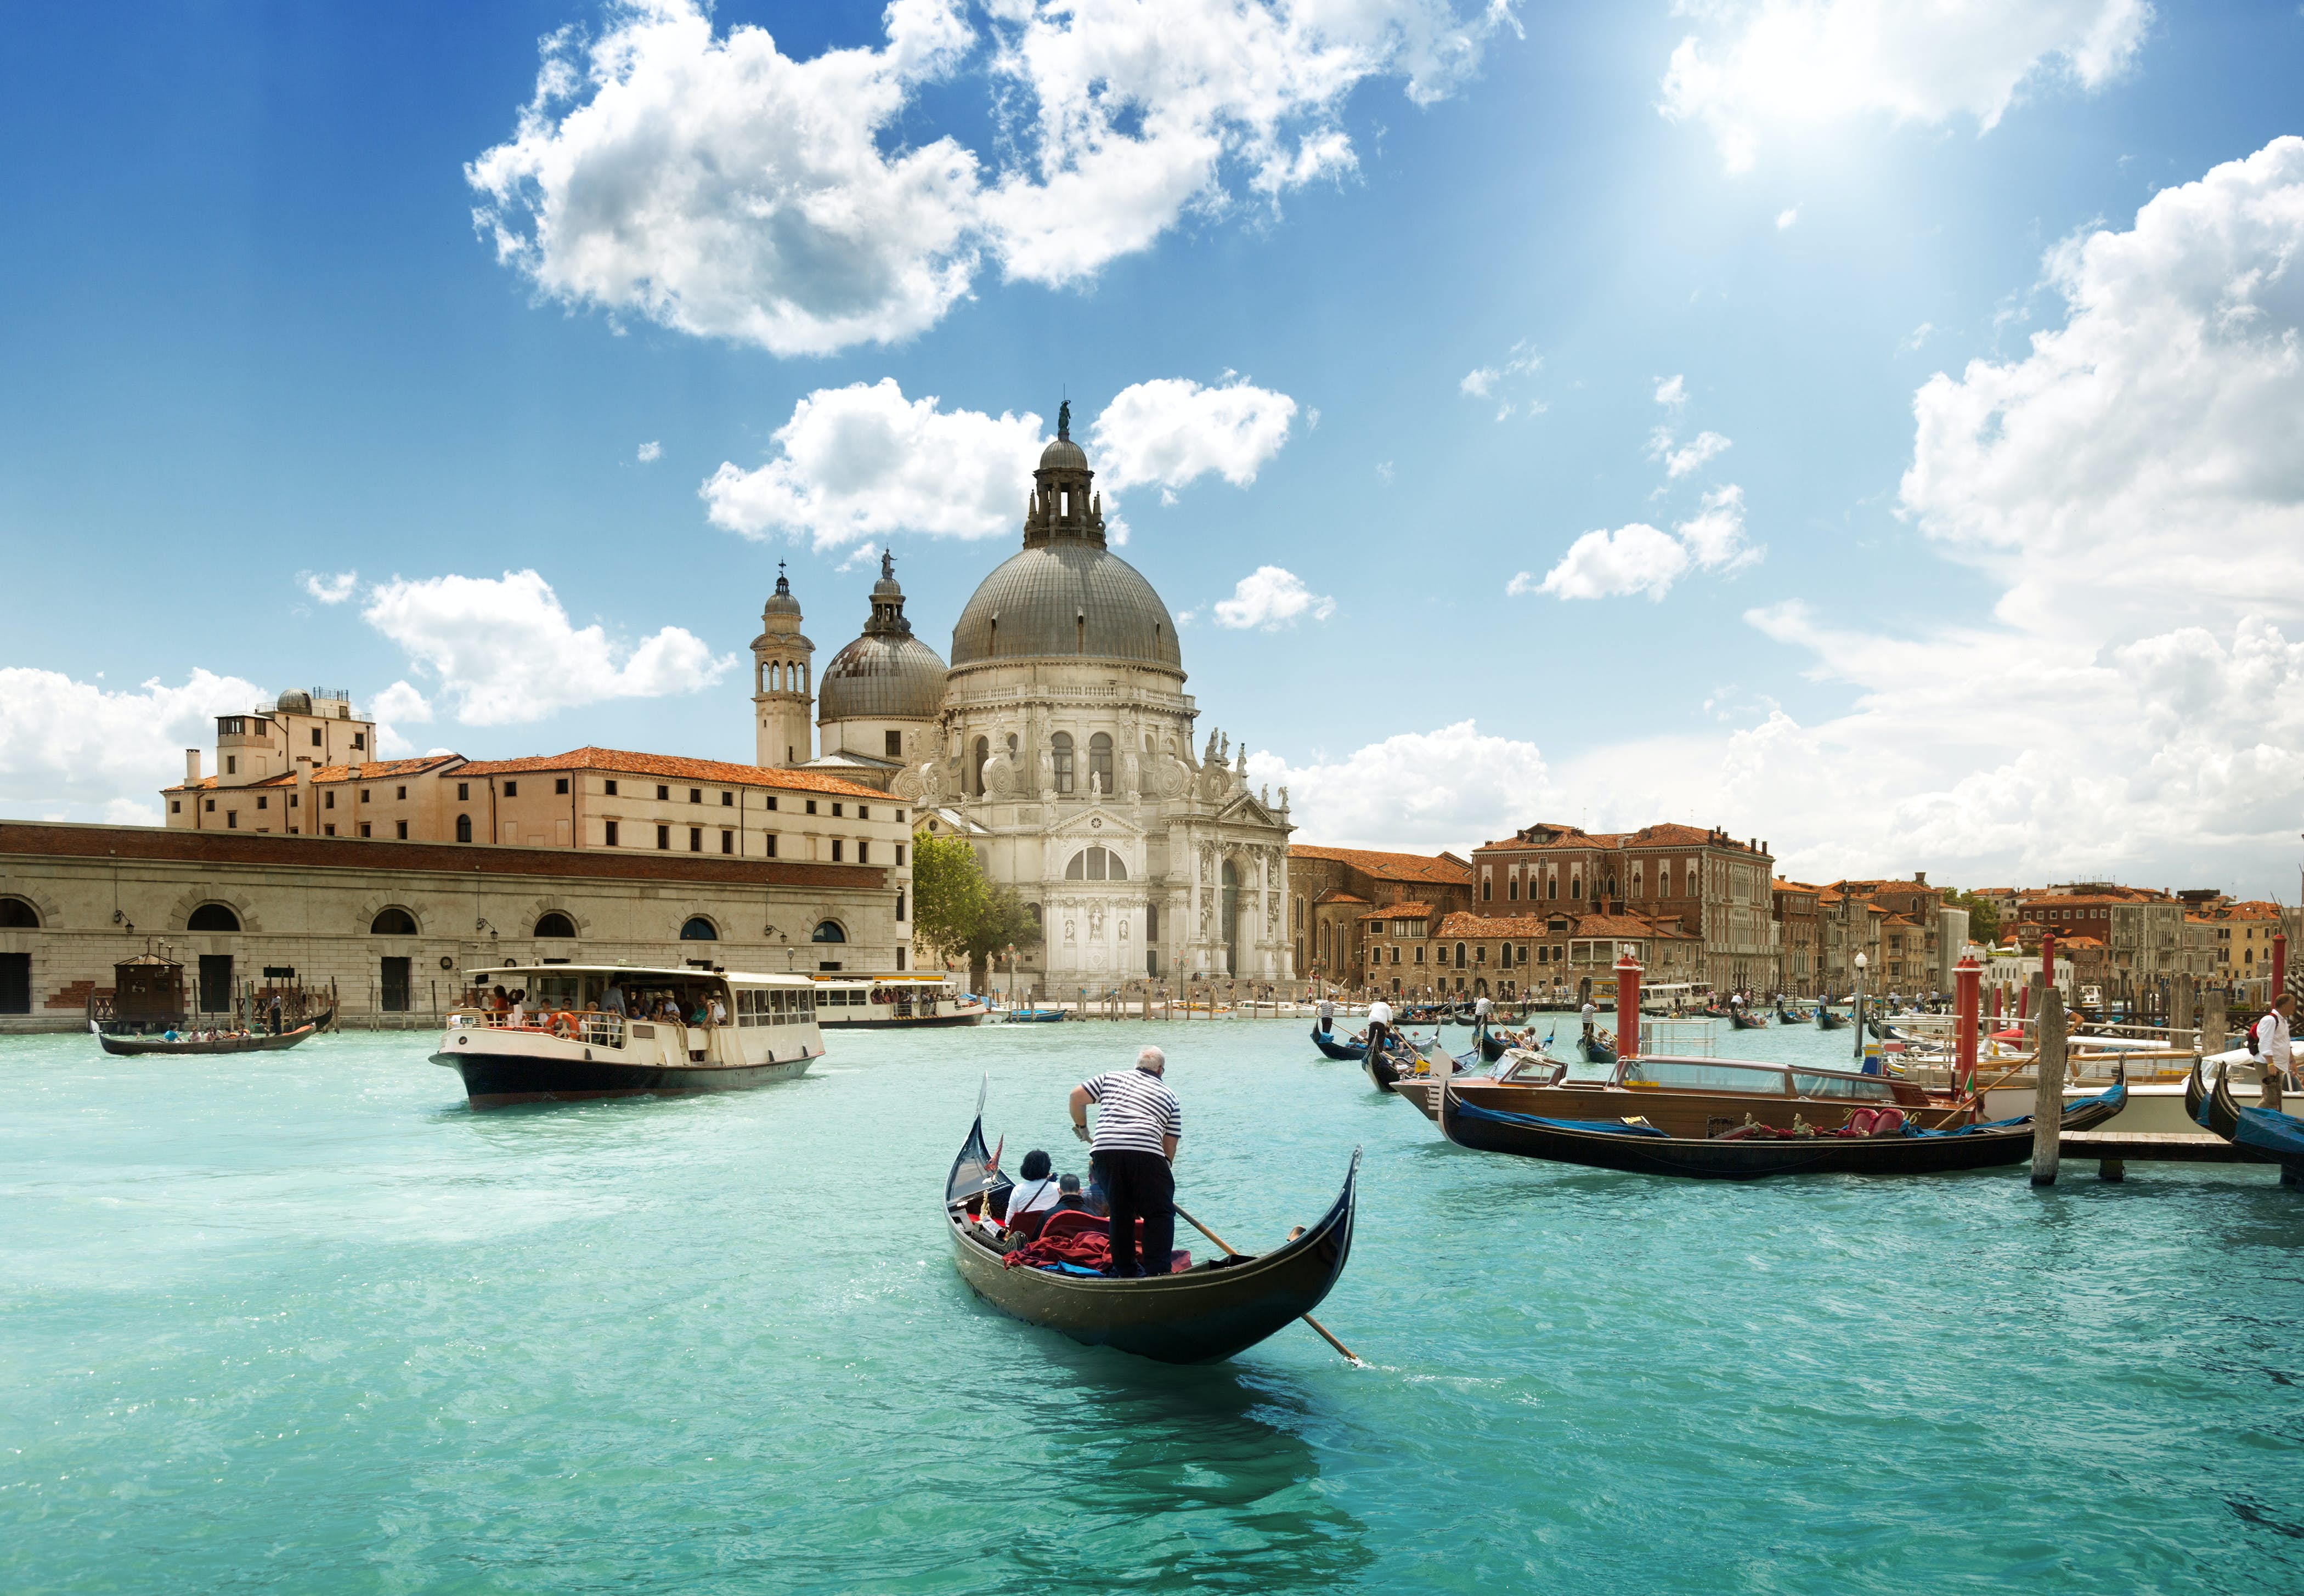 A gondola on Venice's Grand Canal steers toward the 17th-century Basilica di Santa Maria della Salute © Iakov Kalinin / Shutterstock